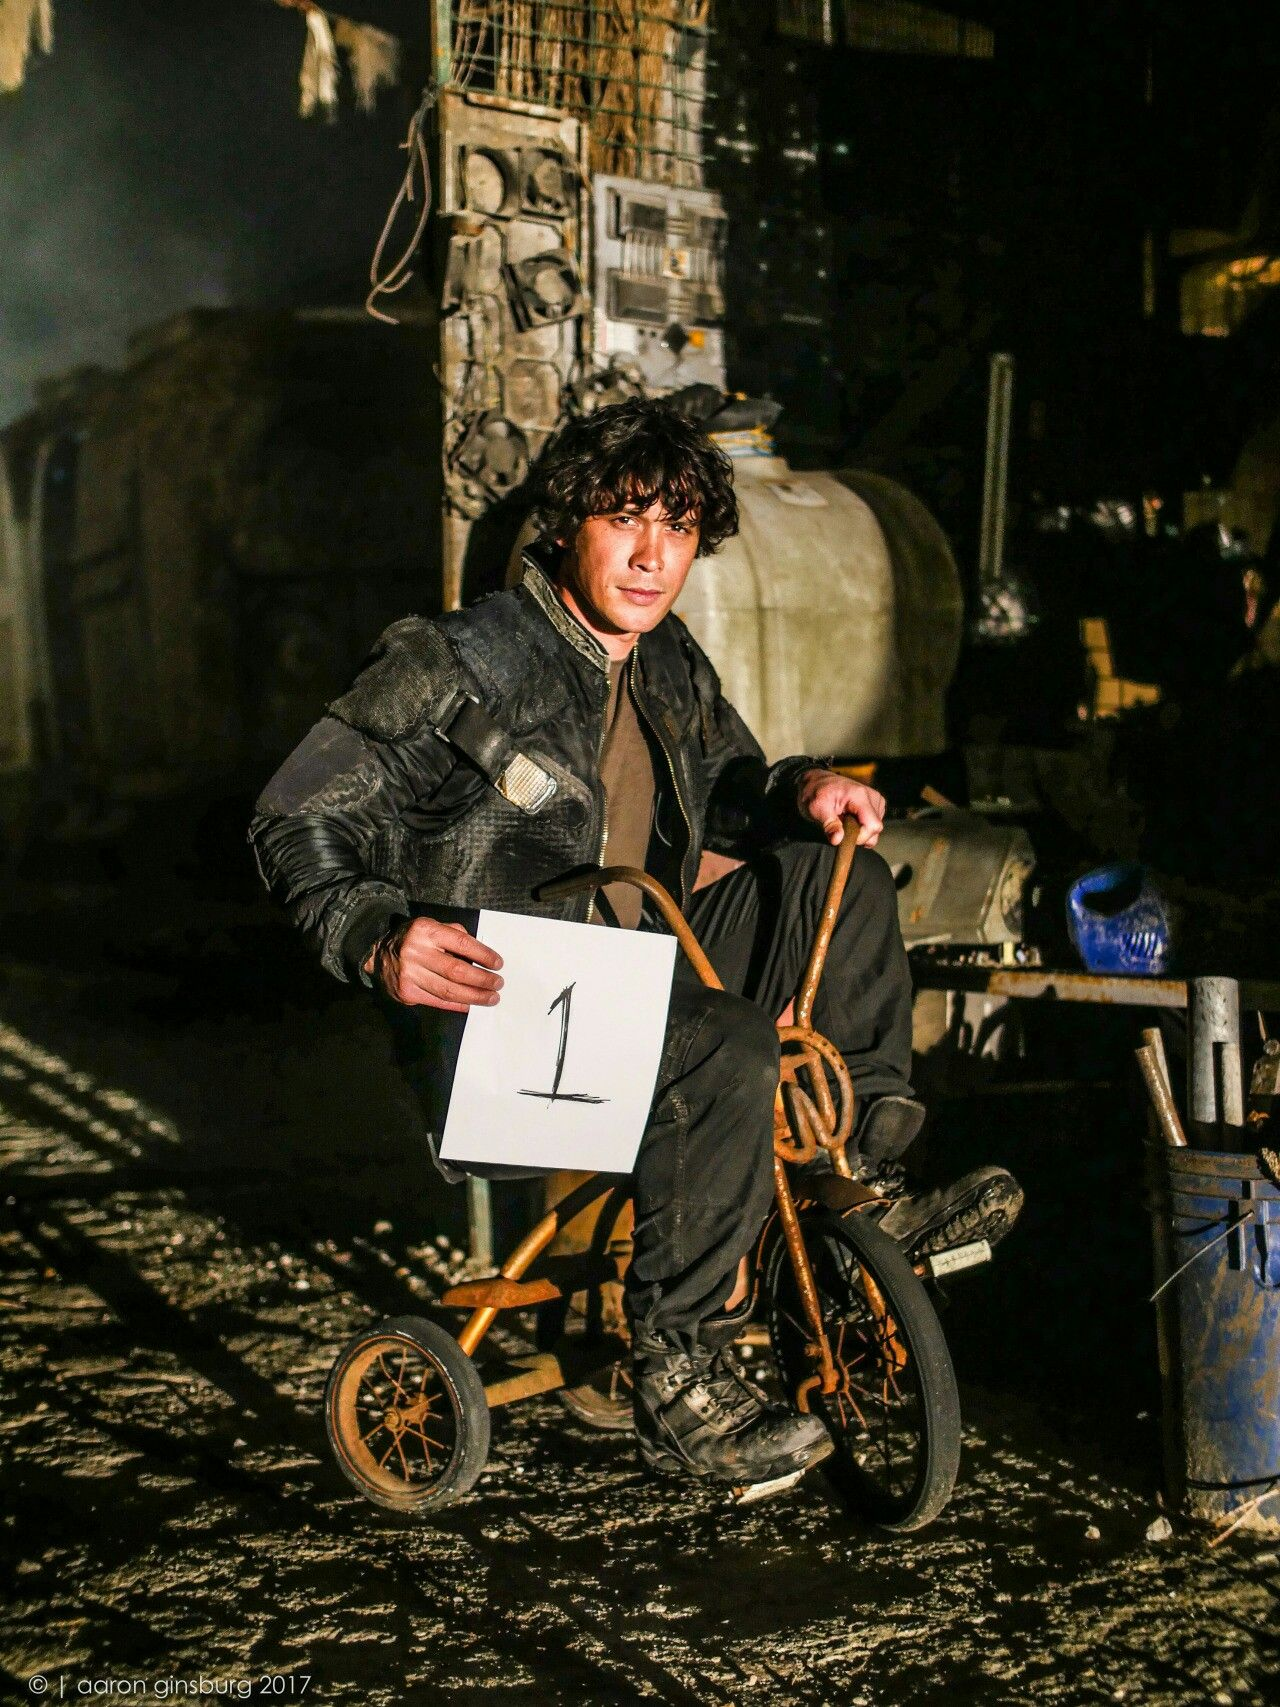 Pin by Laura Broøks on The 100 in 2019 | Bob morley, The 100, The